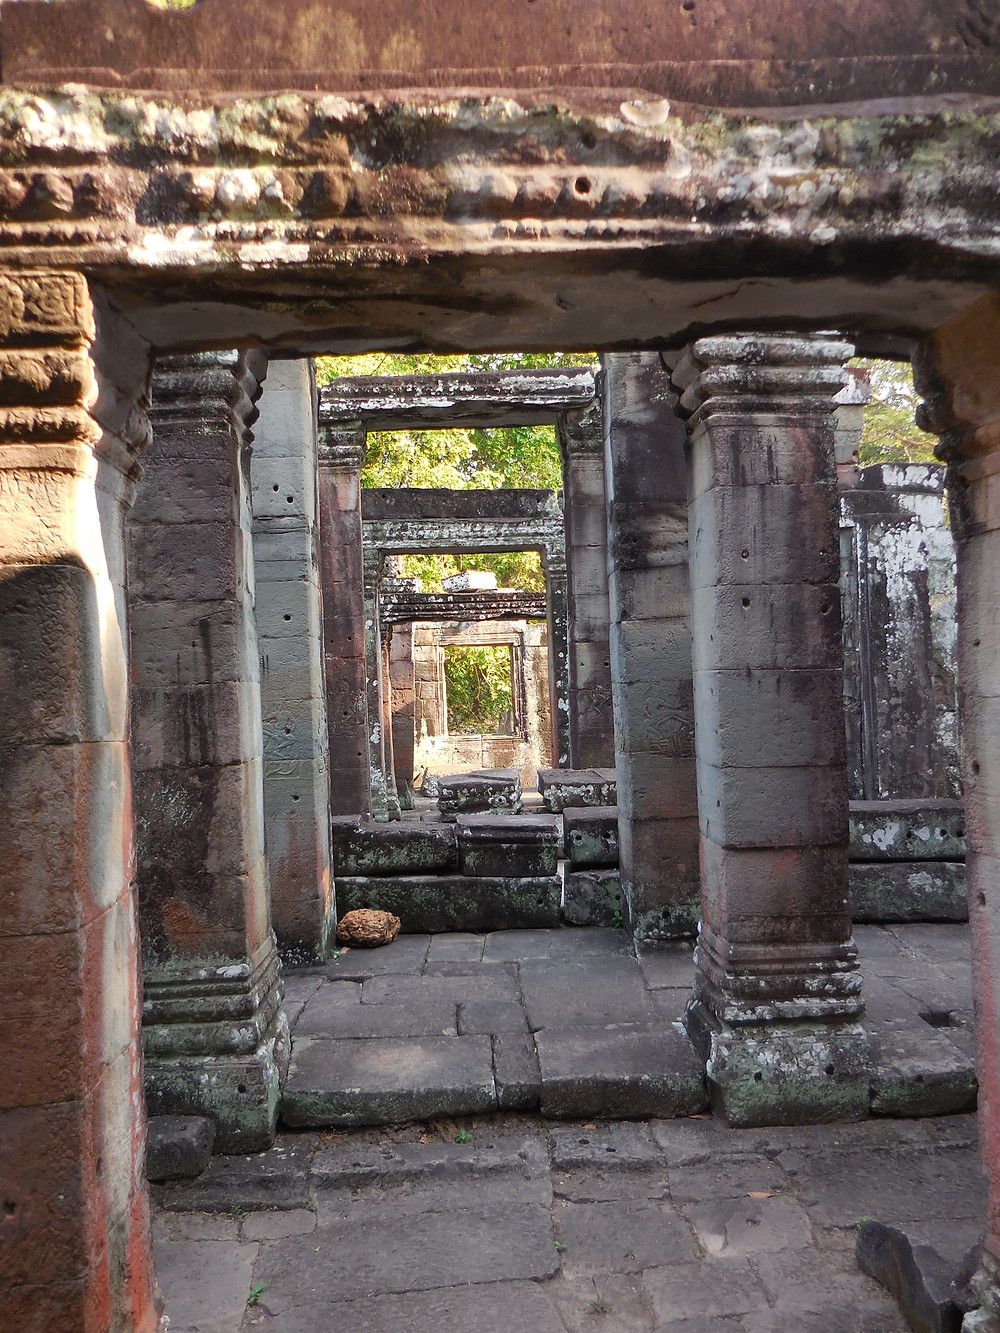 There are many corridors throughout Banteay Kdei